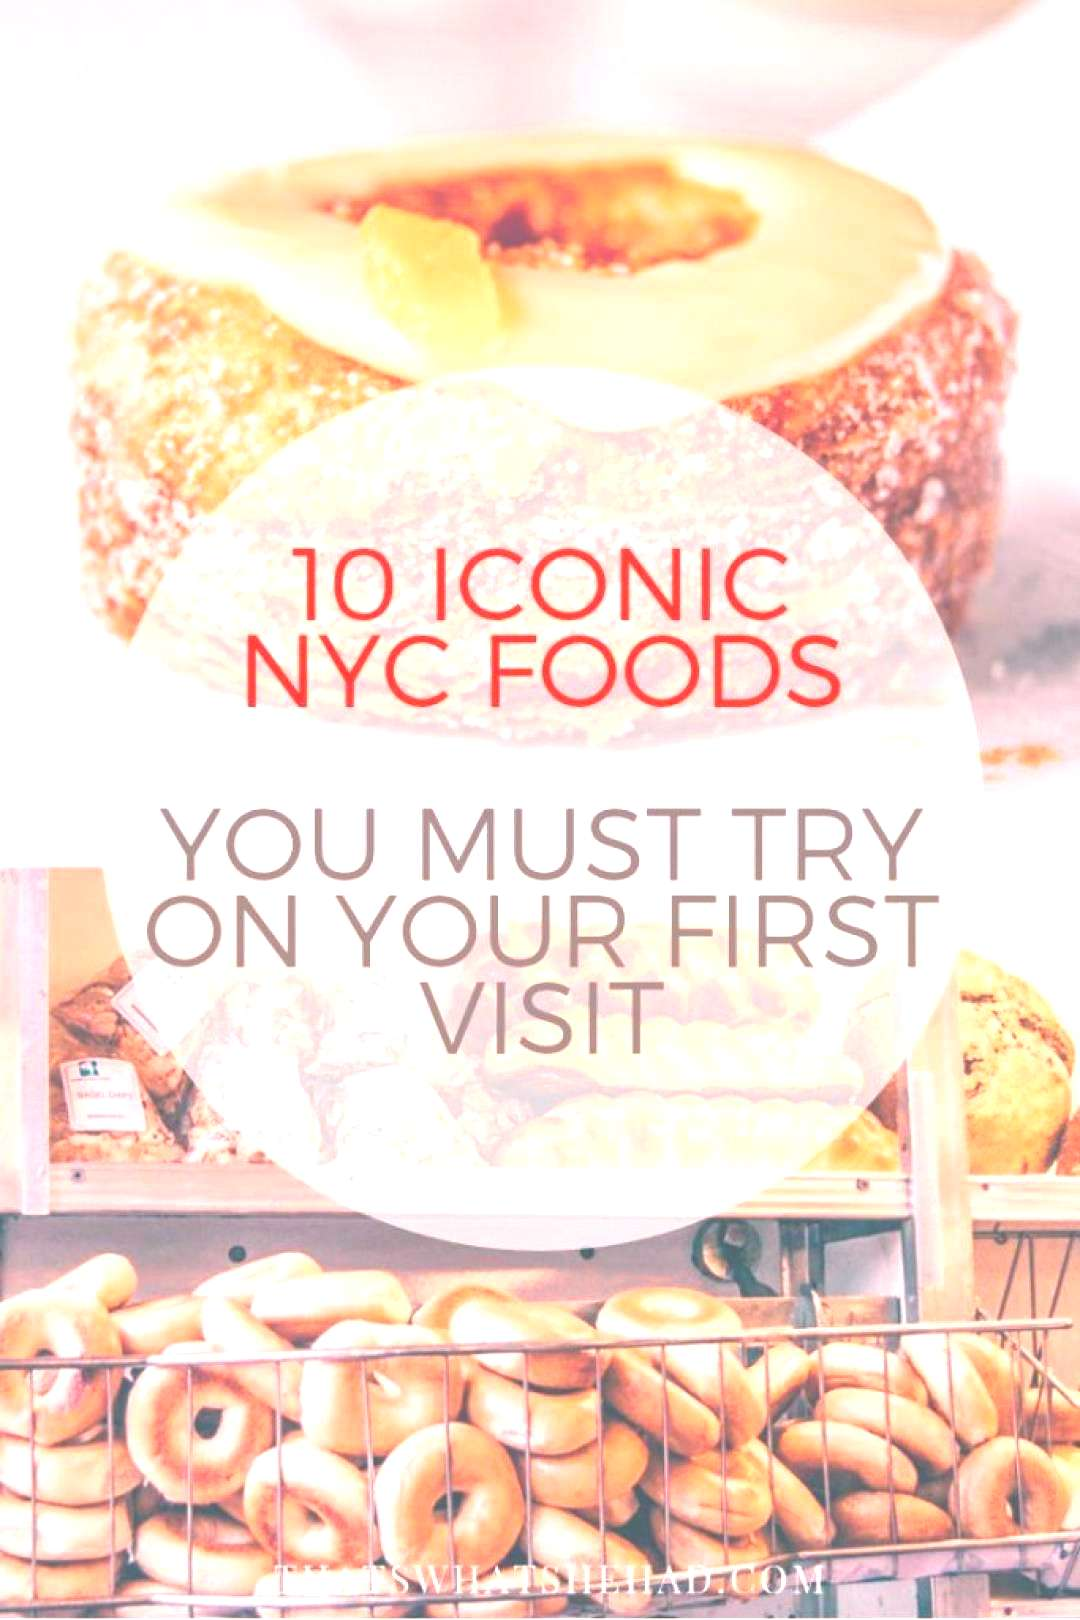 Iconic NYC restaurants you must visit on your first trip to NYC!You can find Foodie travel and more